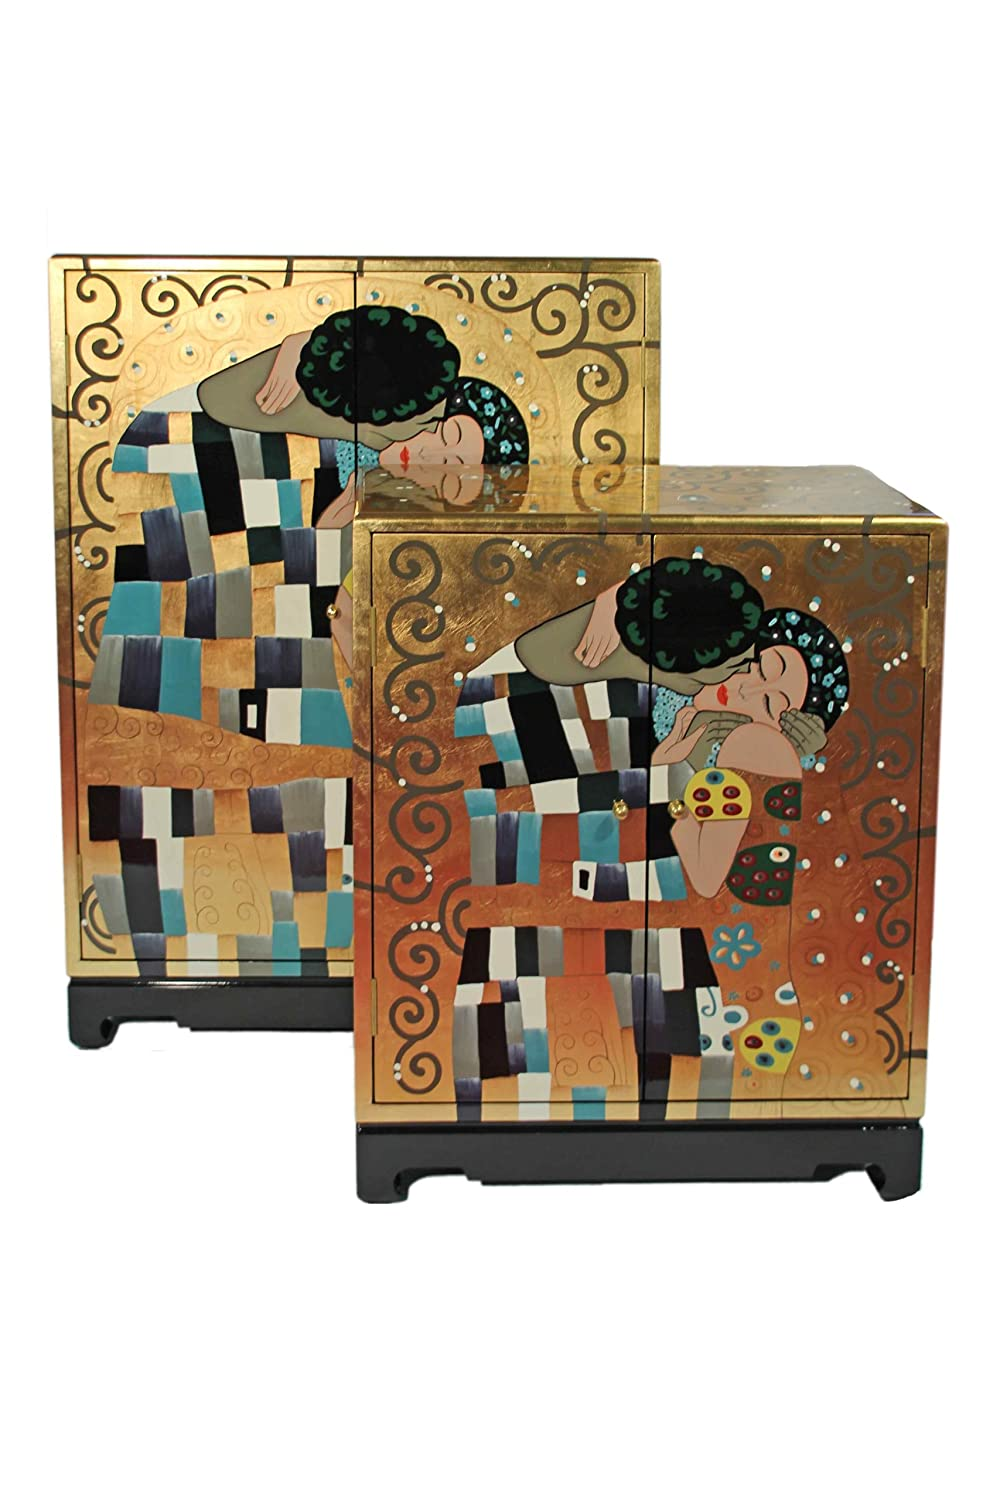 Casa Collection / Art for living by Jänig 10873 Schränke, 2-er Set, 2-türig, Der Kuß, Lack, Gustav Klimt, 102 x 74 x 43/77 x 61 x 35 cm